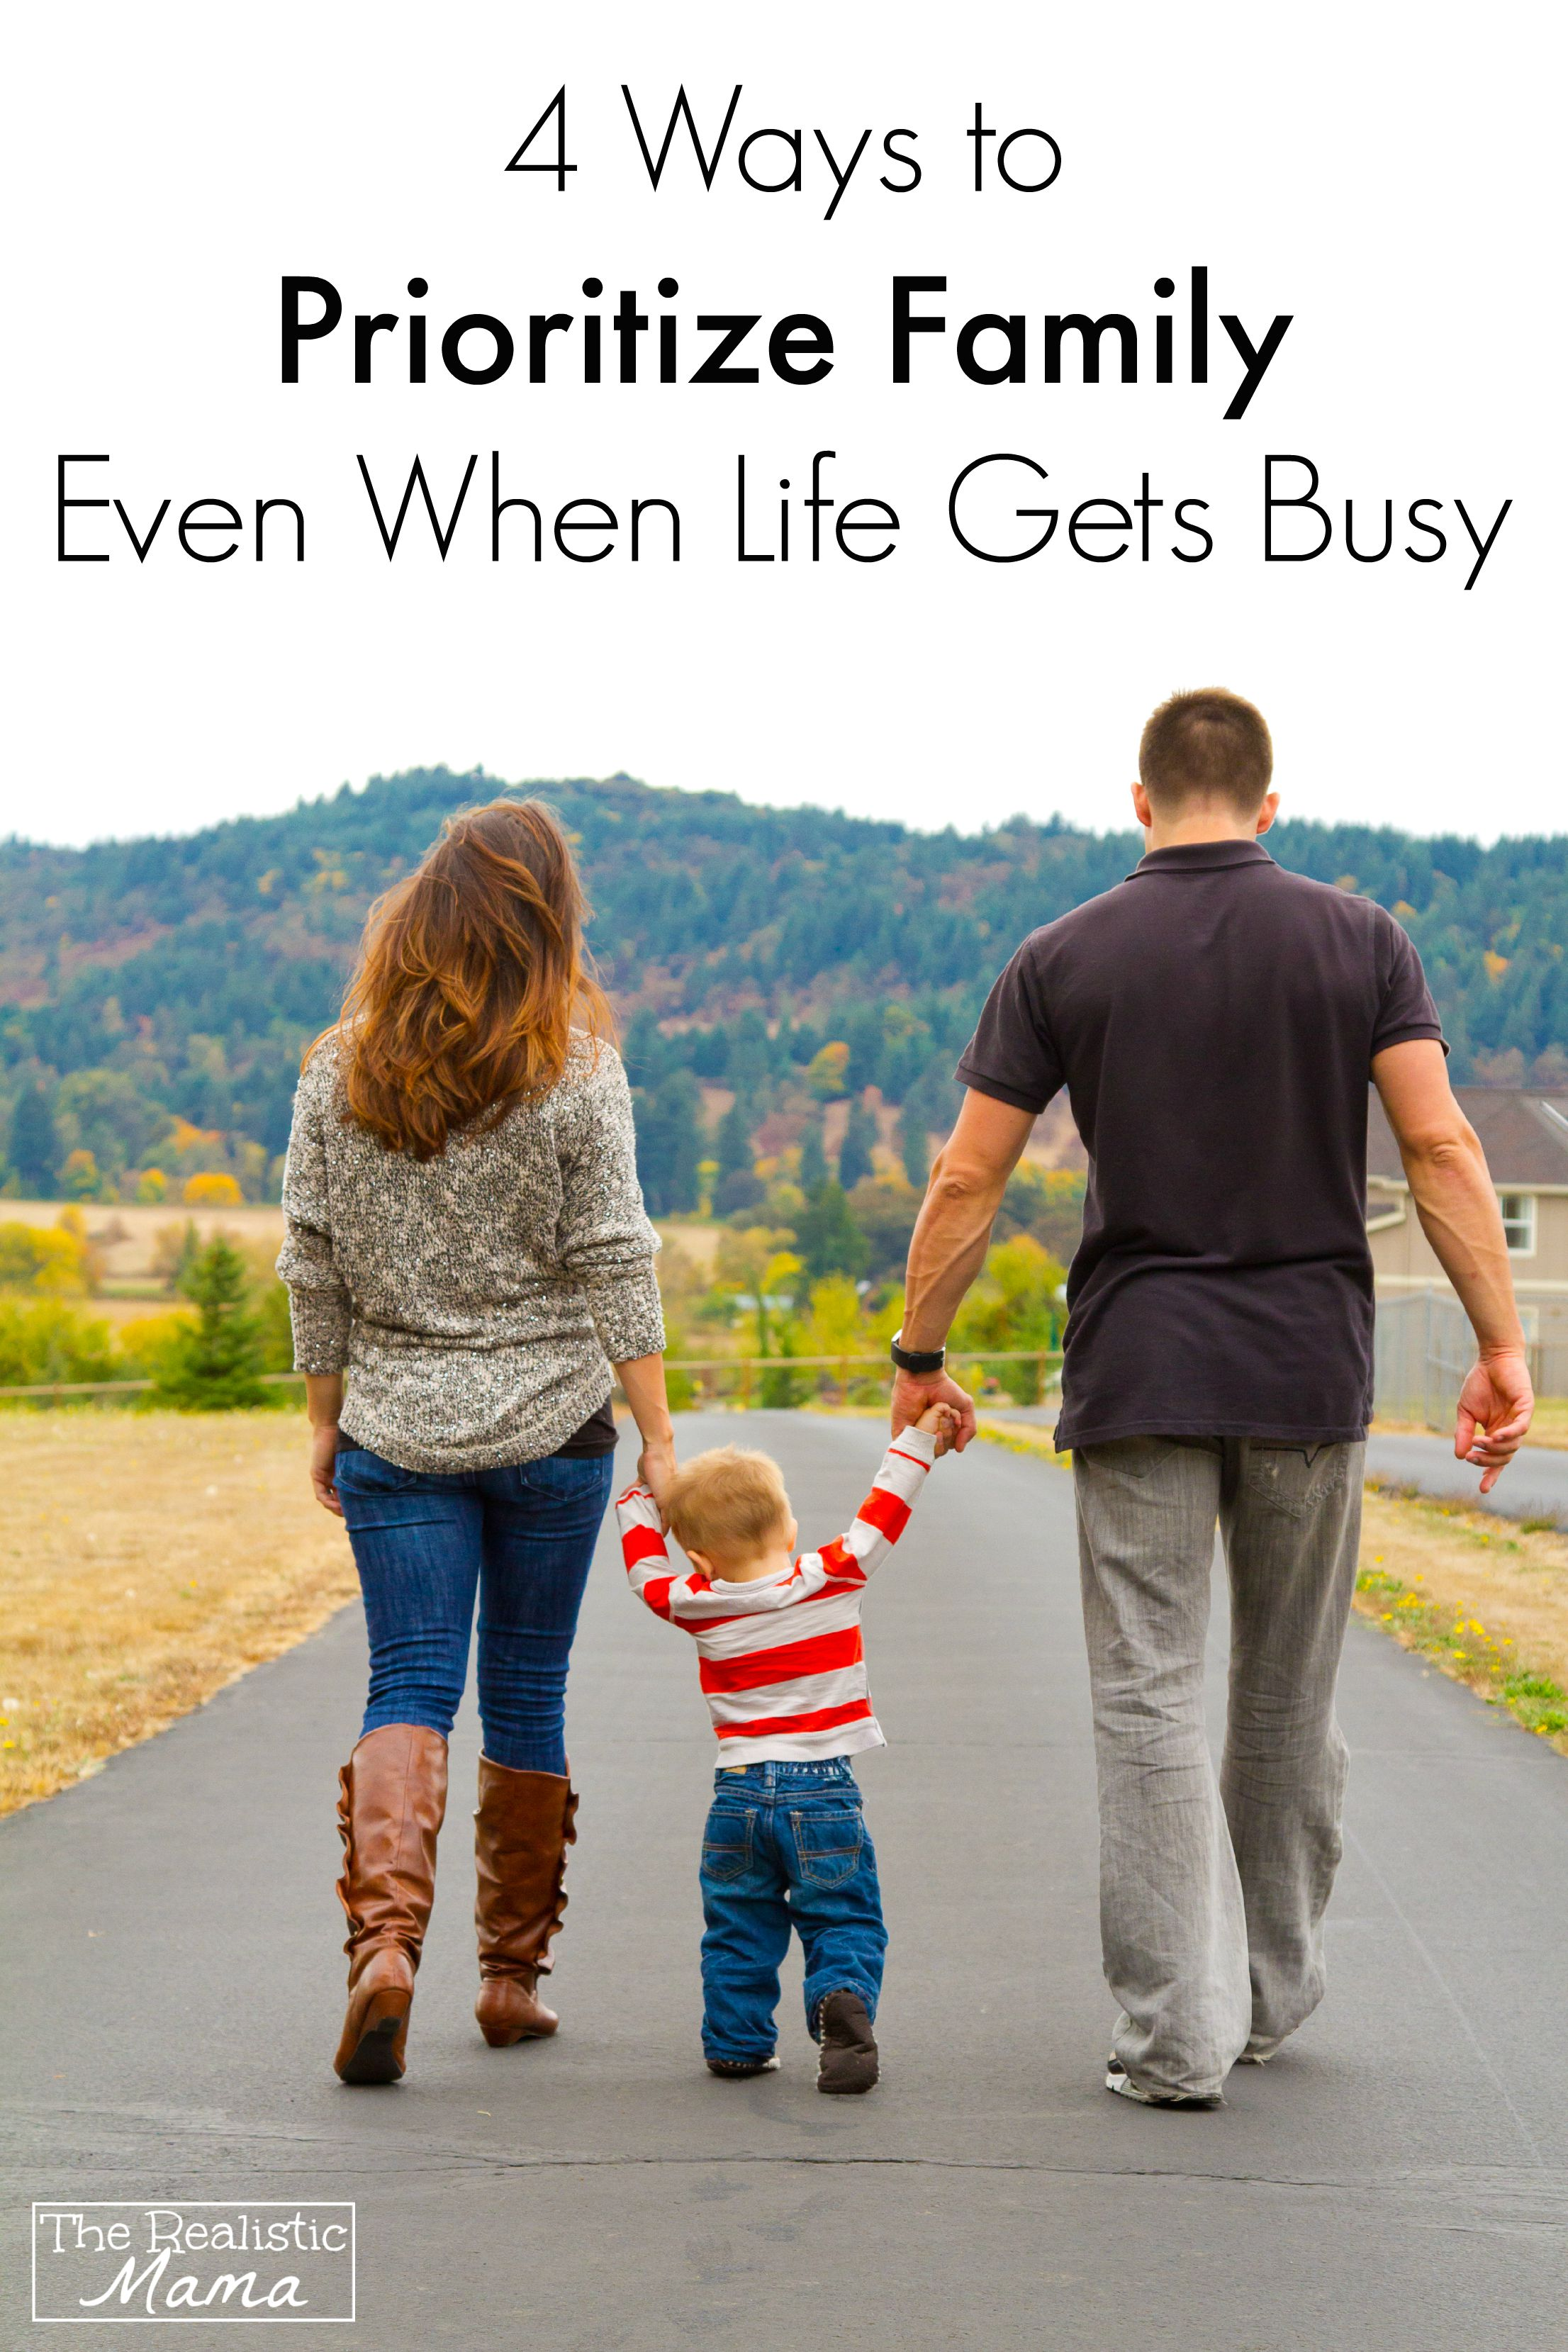 4 Easy Ways to Prioritize Family Even When Life Gets Busy